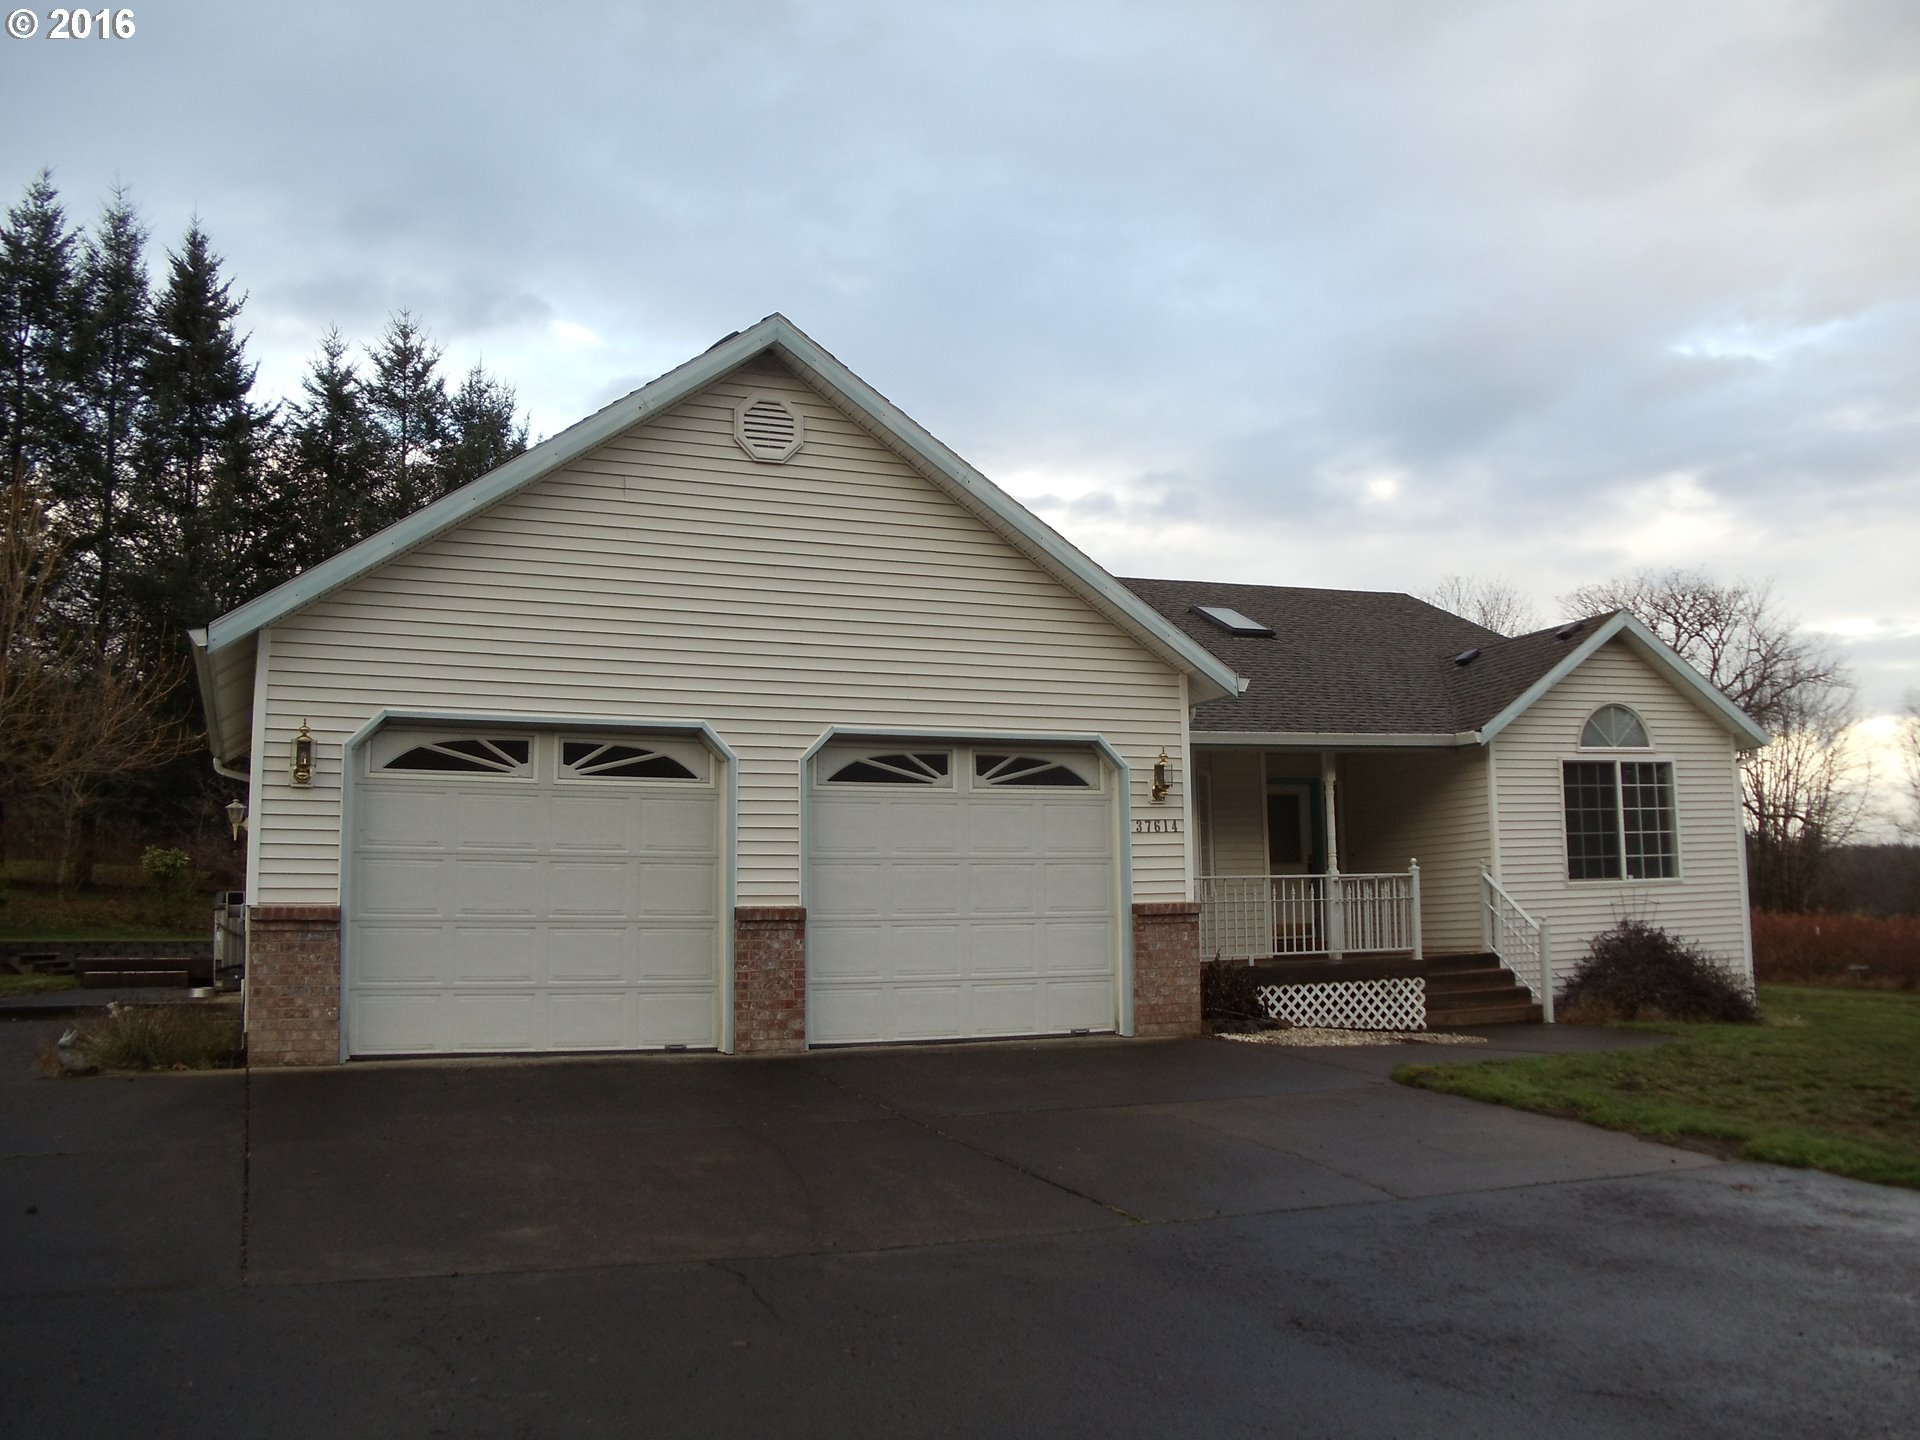 37614 NE 137TH CT, La Center, WA 98629